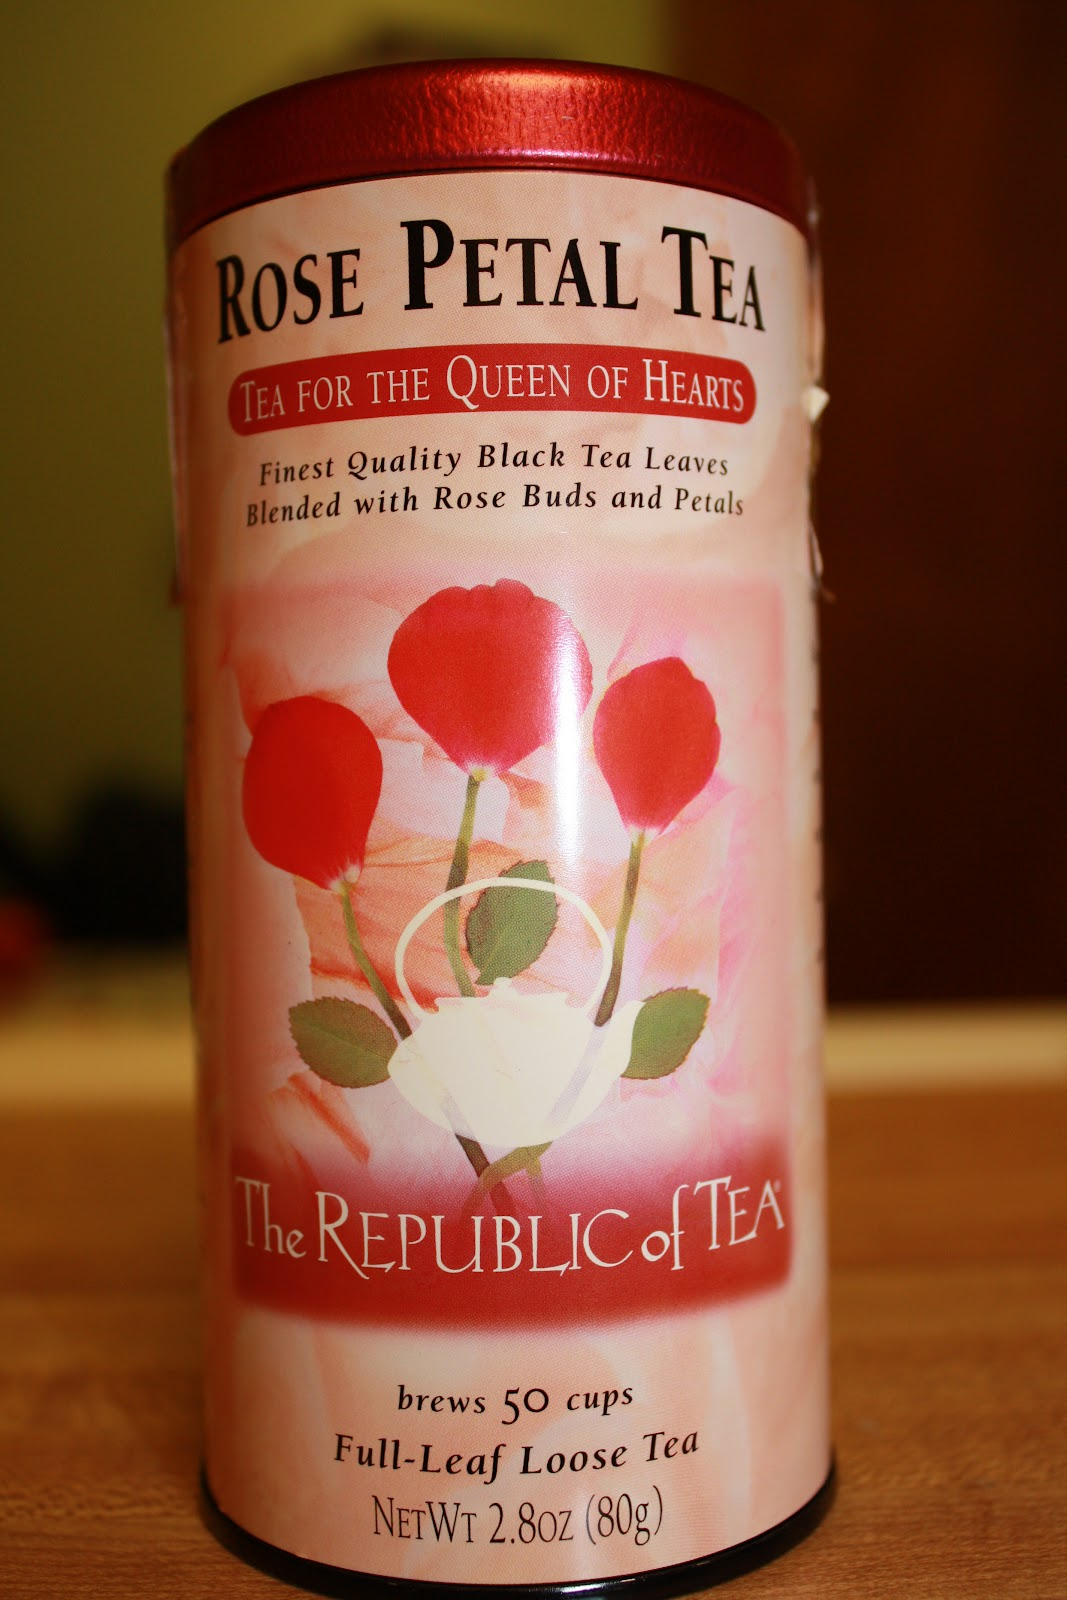 rose petal tea from republic of tea more tea i enjoy petal tea rose ...